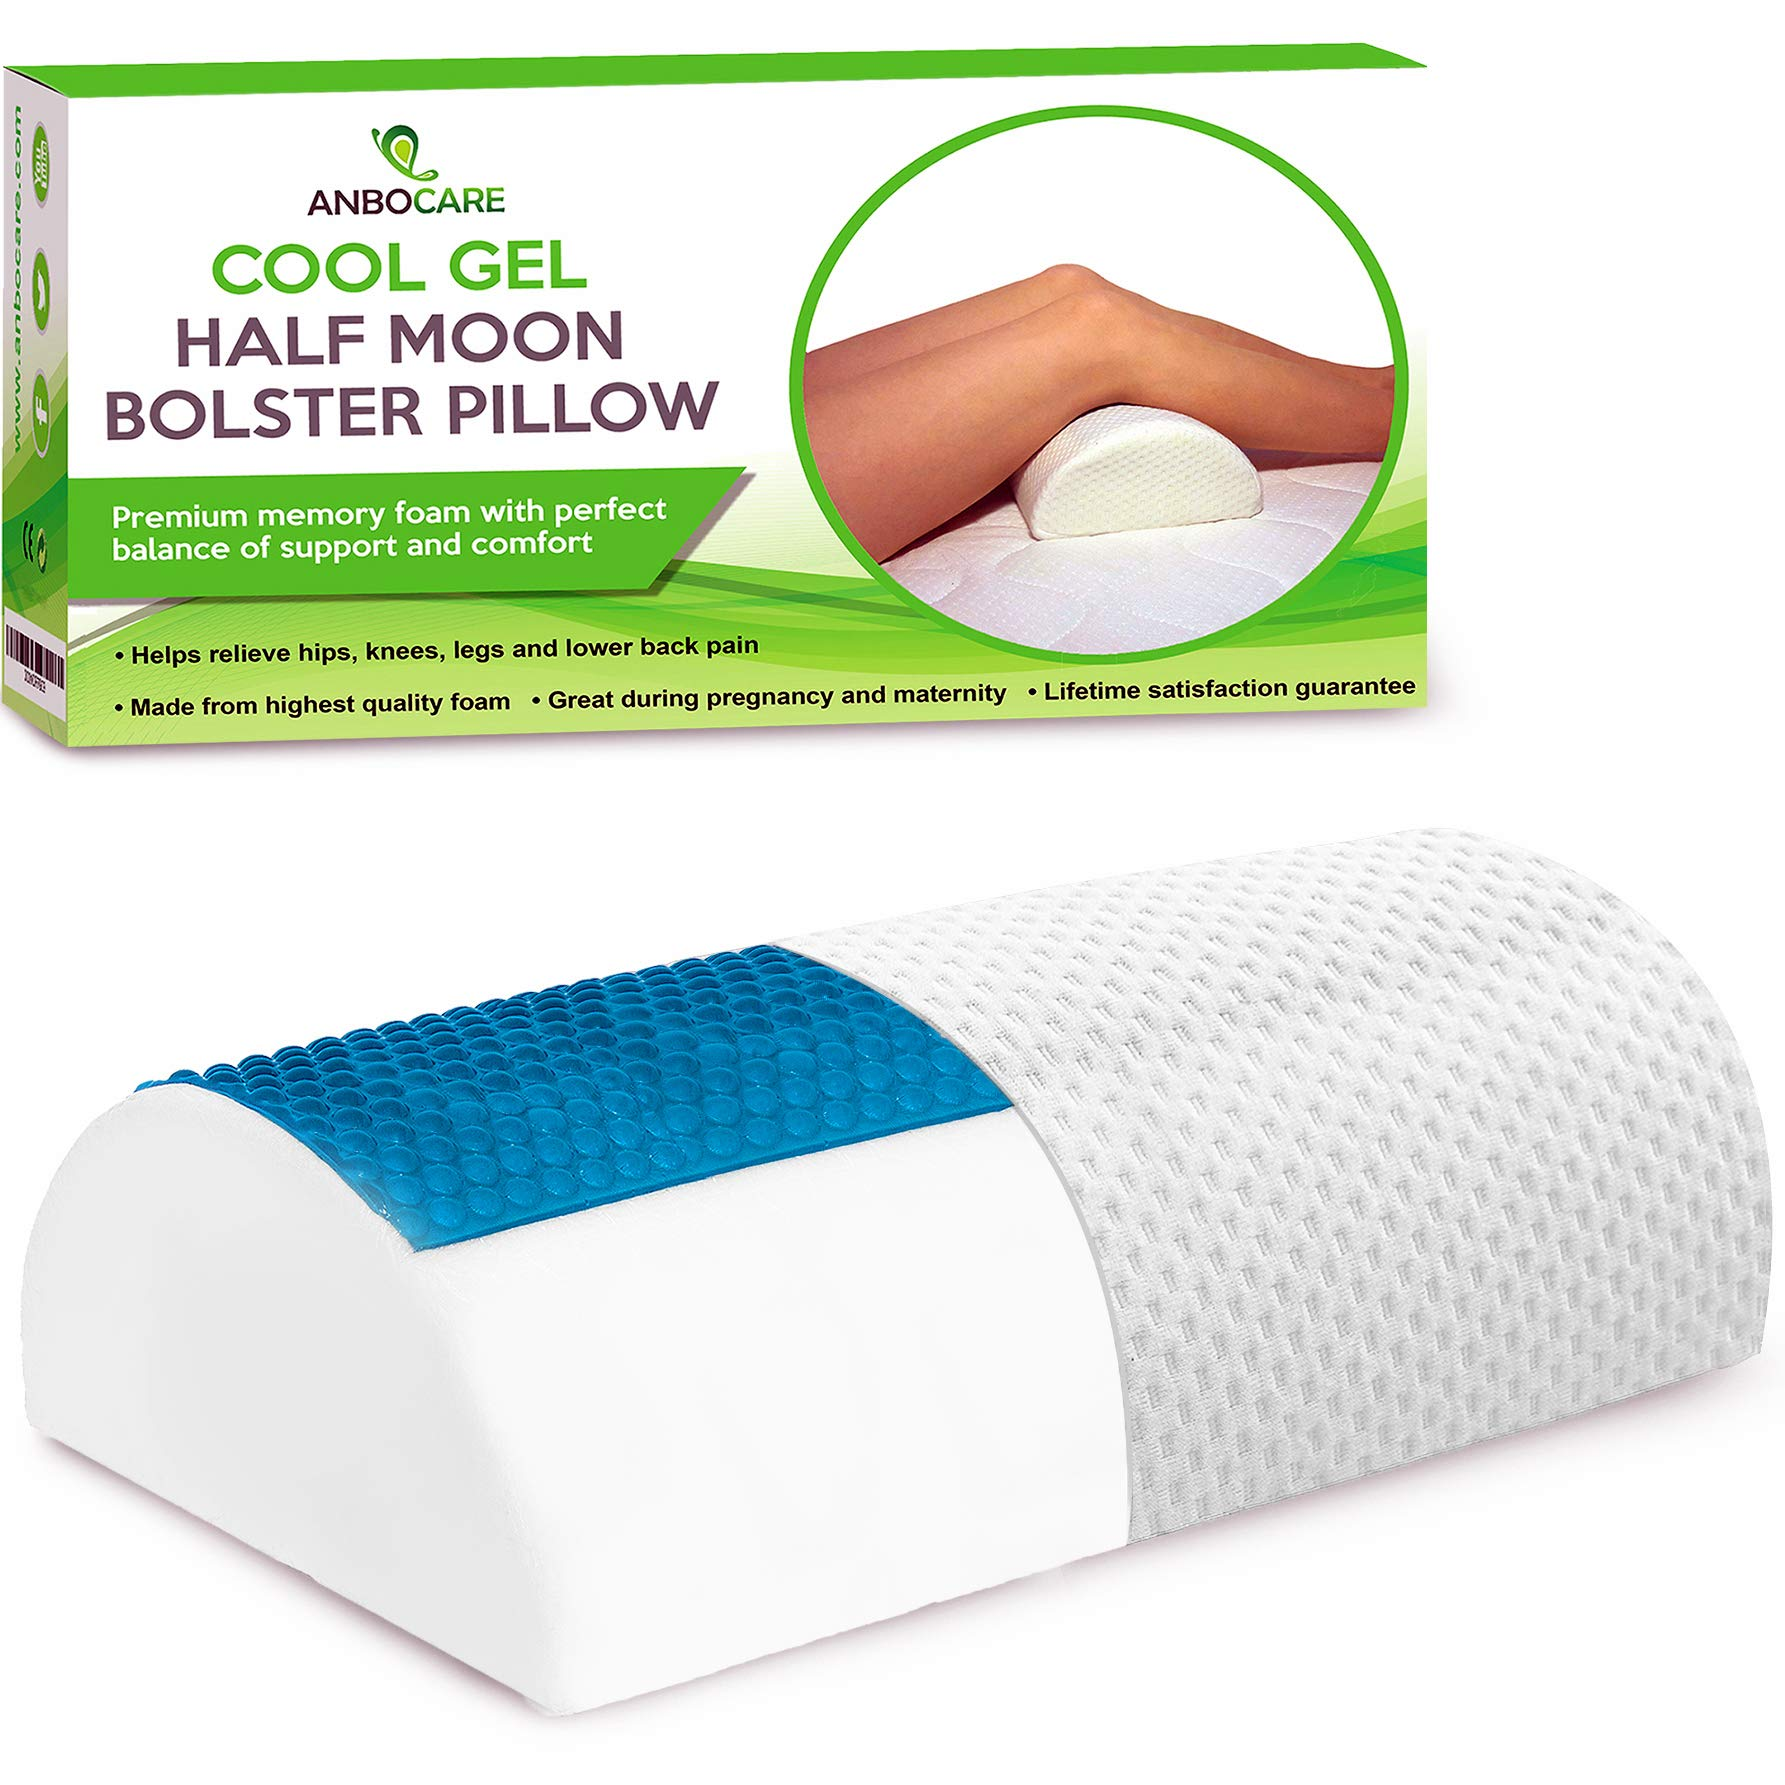 Half Moon Bolster Pillow - Memory Foam Bed Wedge Provide Ultimate Knee & Leg Support for Side Sleepers - Semi Roll Relief Neck, Hip, Lumbar and Back Pain - Rest Cooling Gel Half-Cylinder for Sleeping by AnboCare